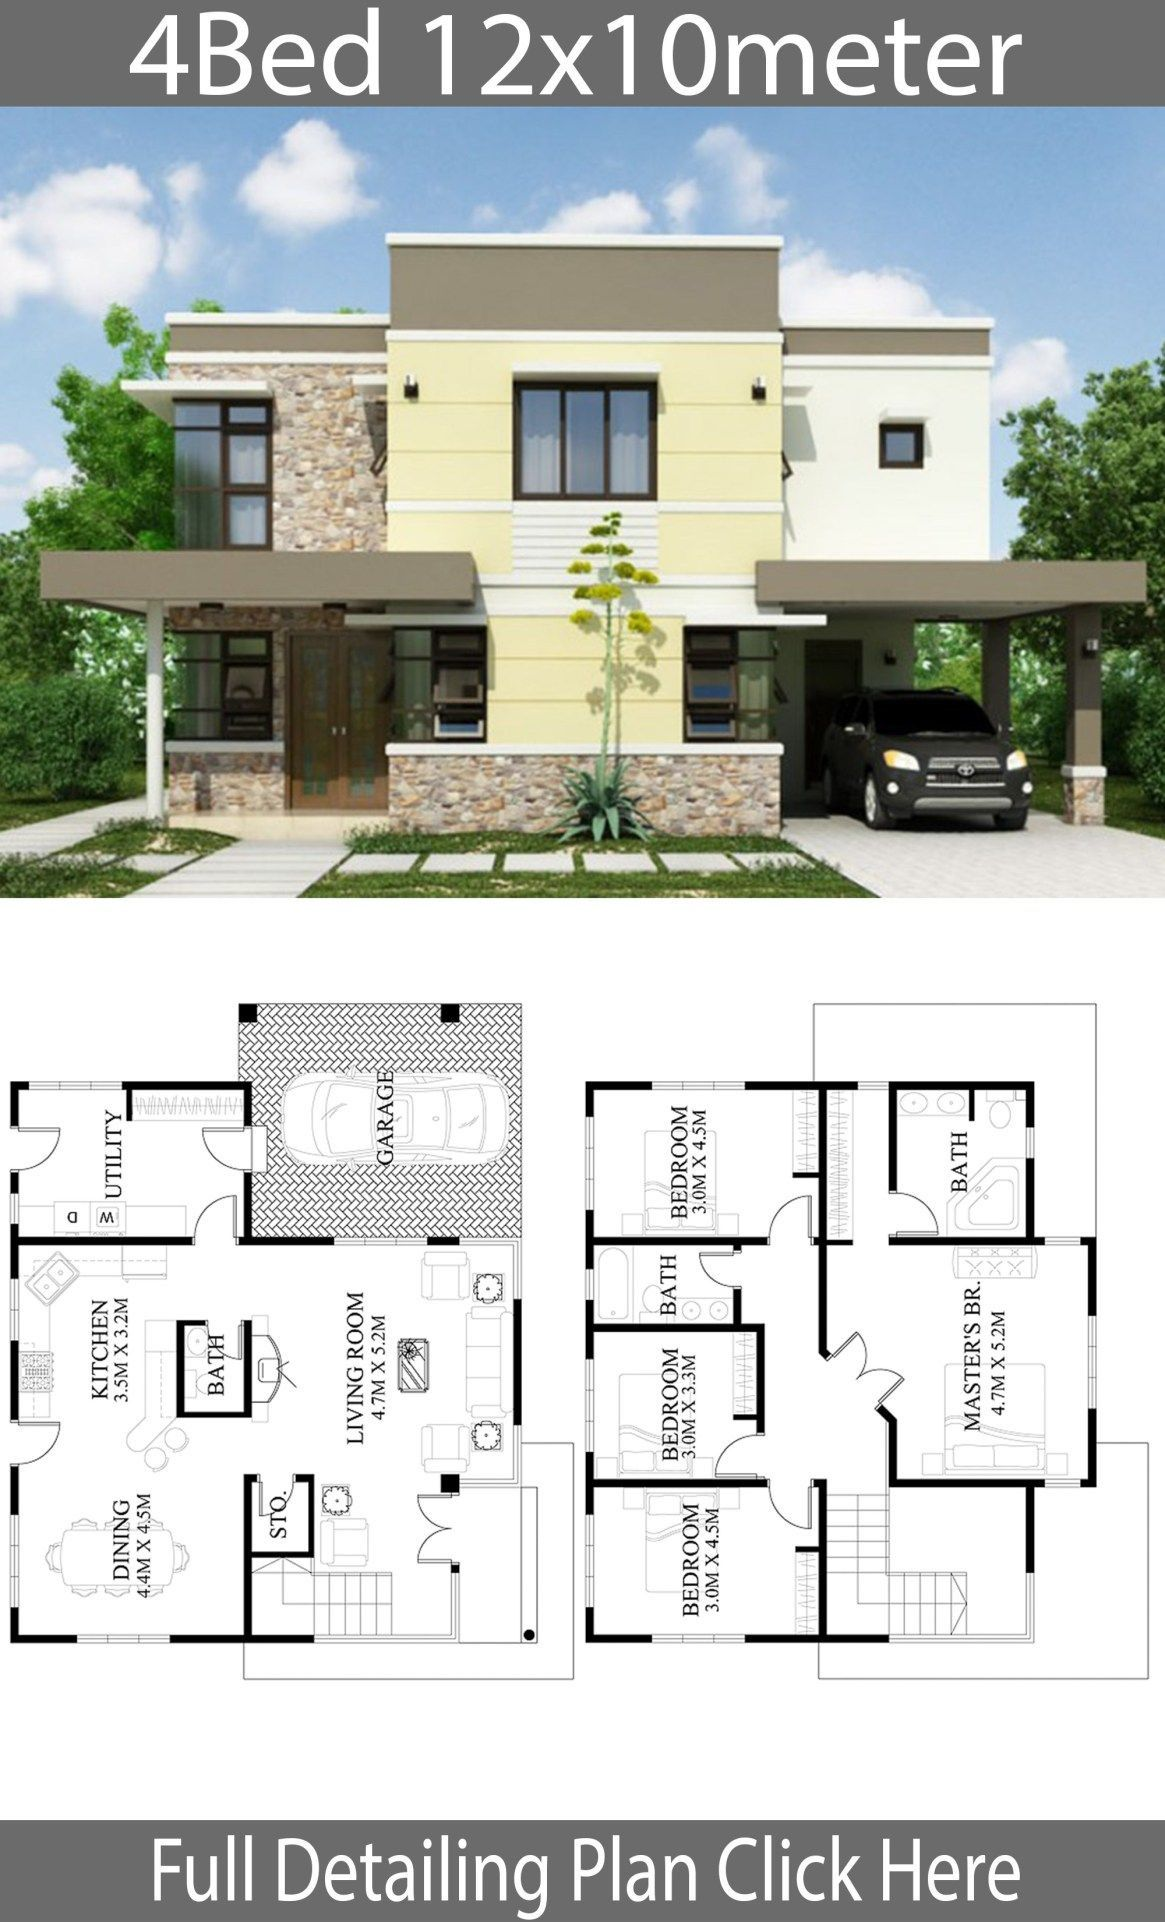 Home Design Plan 12x10m With 4 Bedrooms In 2020 Big Modern Houses Modern House Plans Duplex House Design